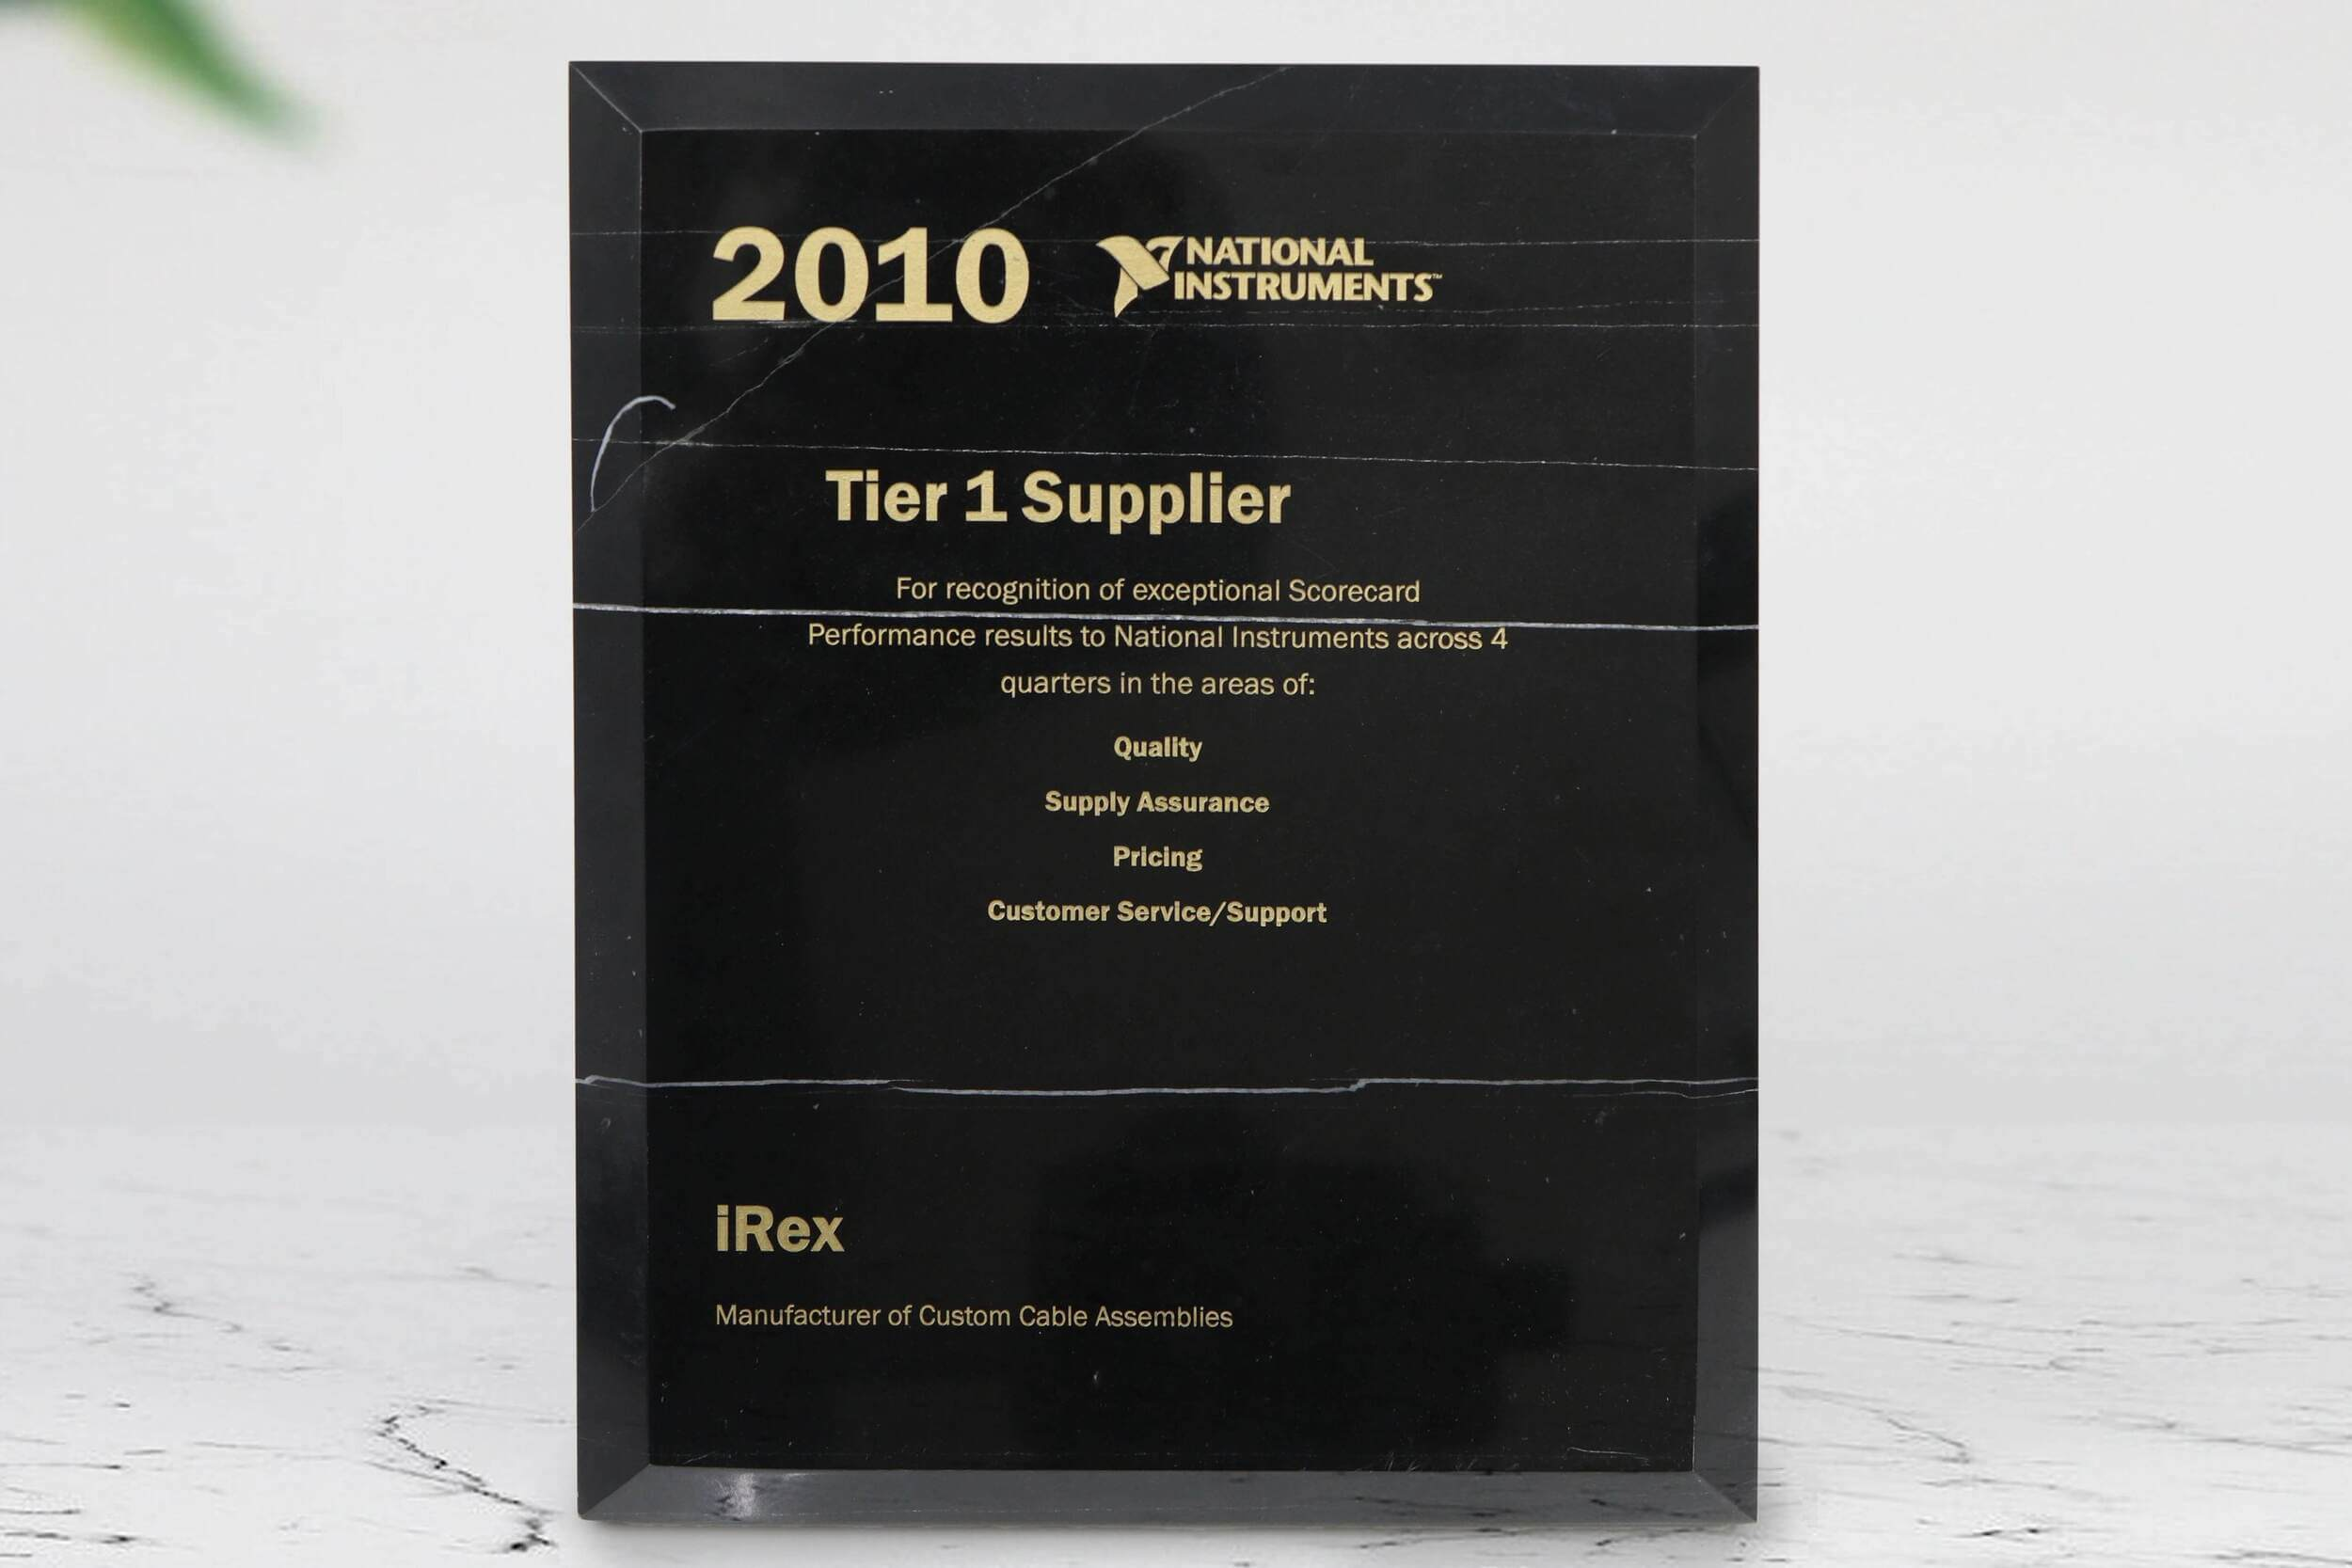 Awarded Tier 1 Supplier